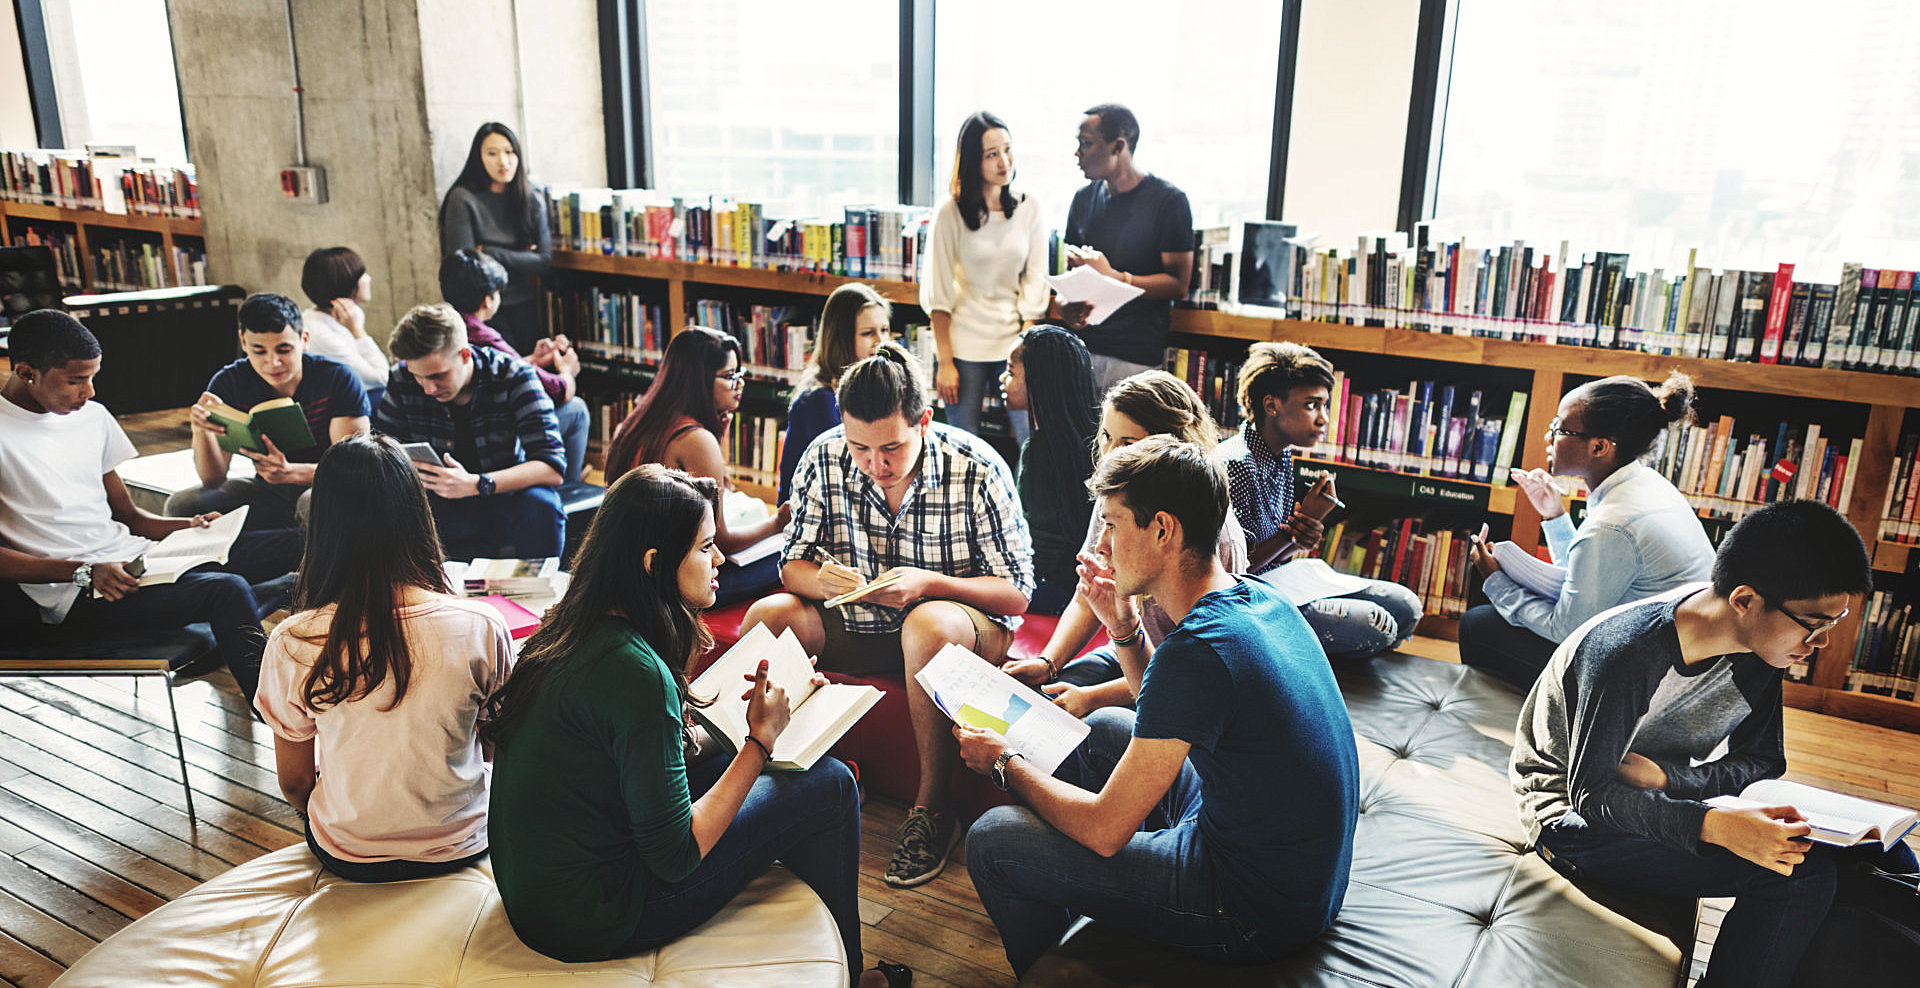 group of student are studying at the library